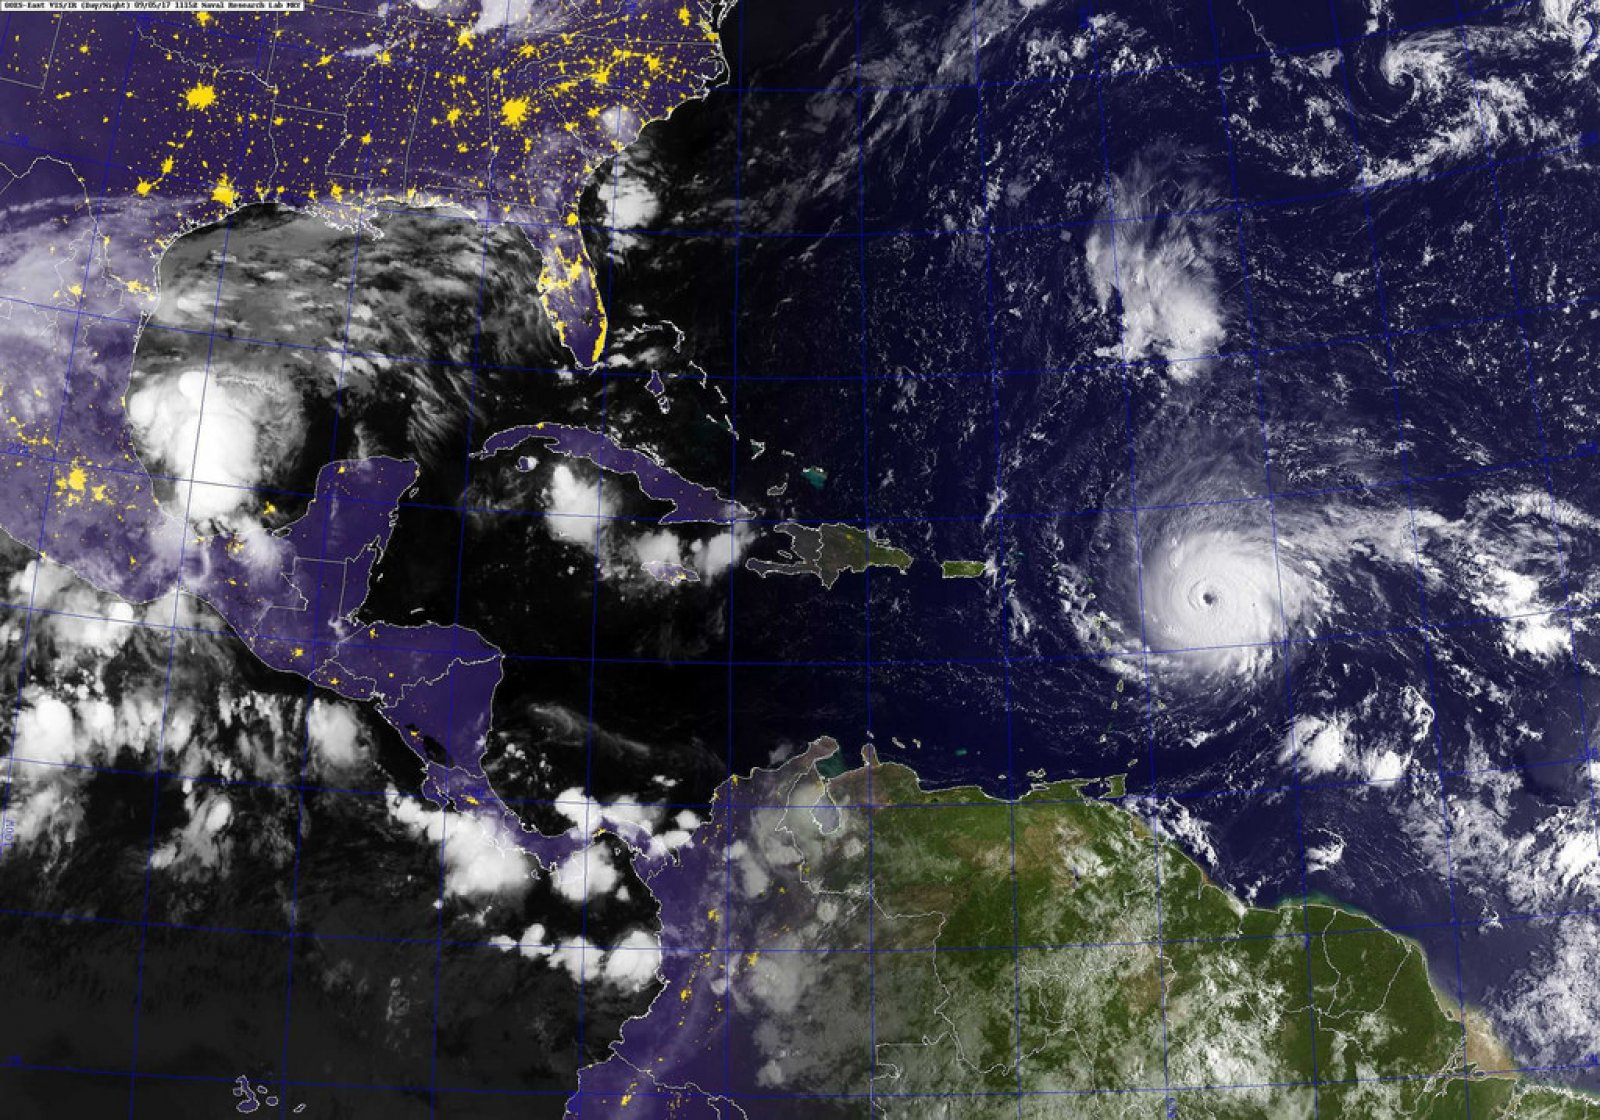 A GOES satellite shows Hurricane Irma, center, and Hurricane Jose, right, in the Atlantic Ocean, and Hurricane Katia in the Gulf of Mexico